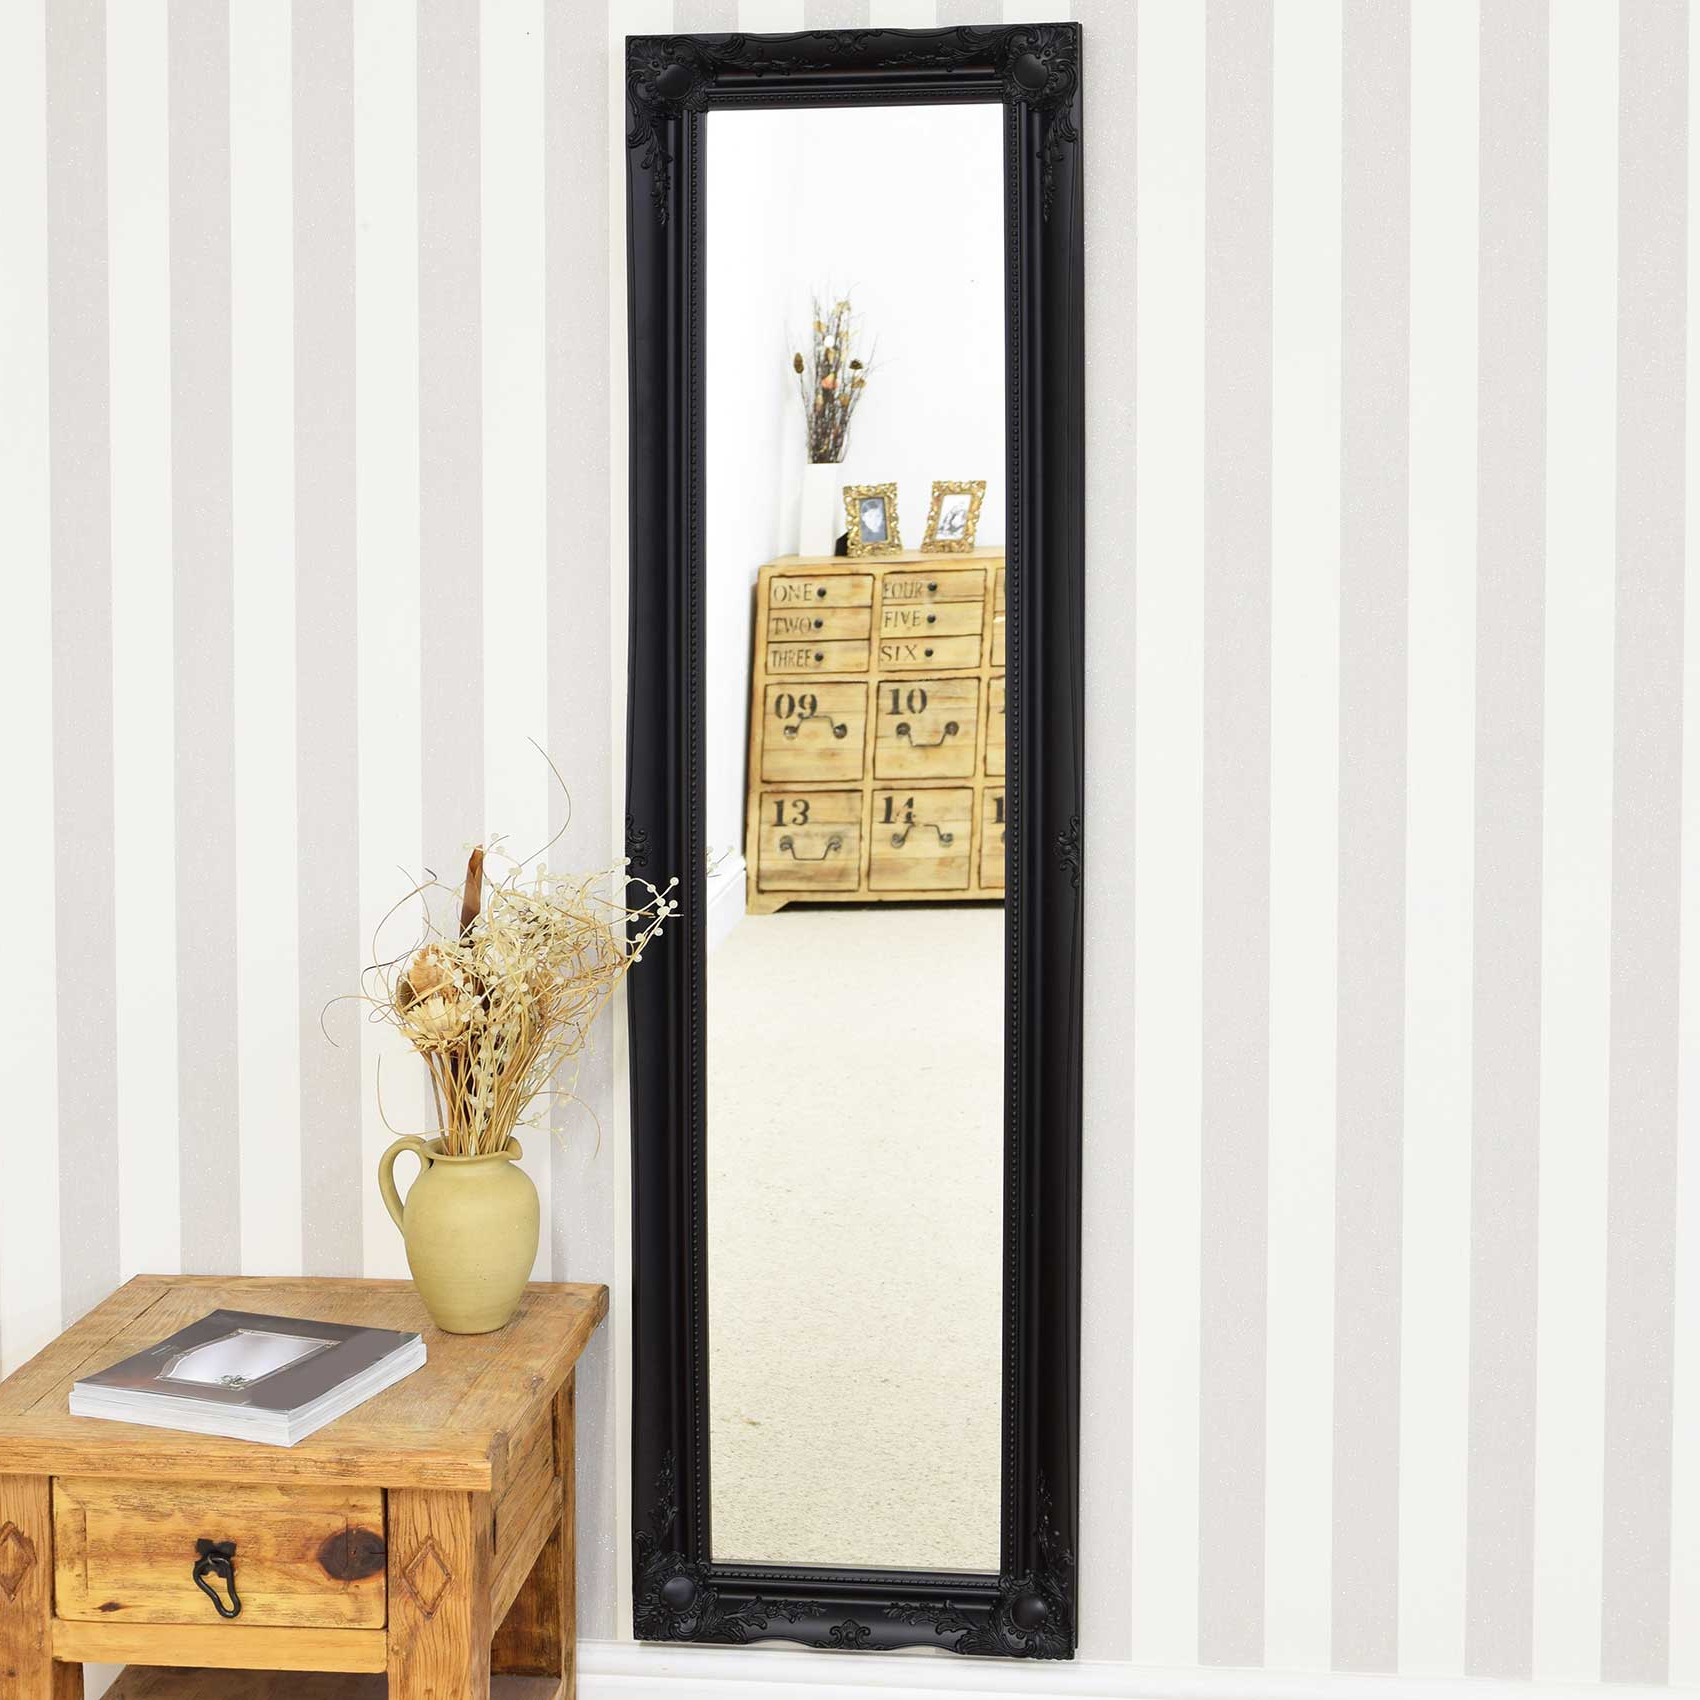 Decorative Full Length Wall Mirrors In 2019 Details About Large Wall Mirror 5Ft6 X 1Ft6 Black Full Length Classic  Ornate Decorative (View 3 of 20)